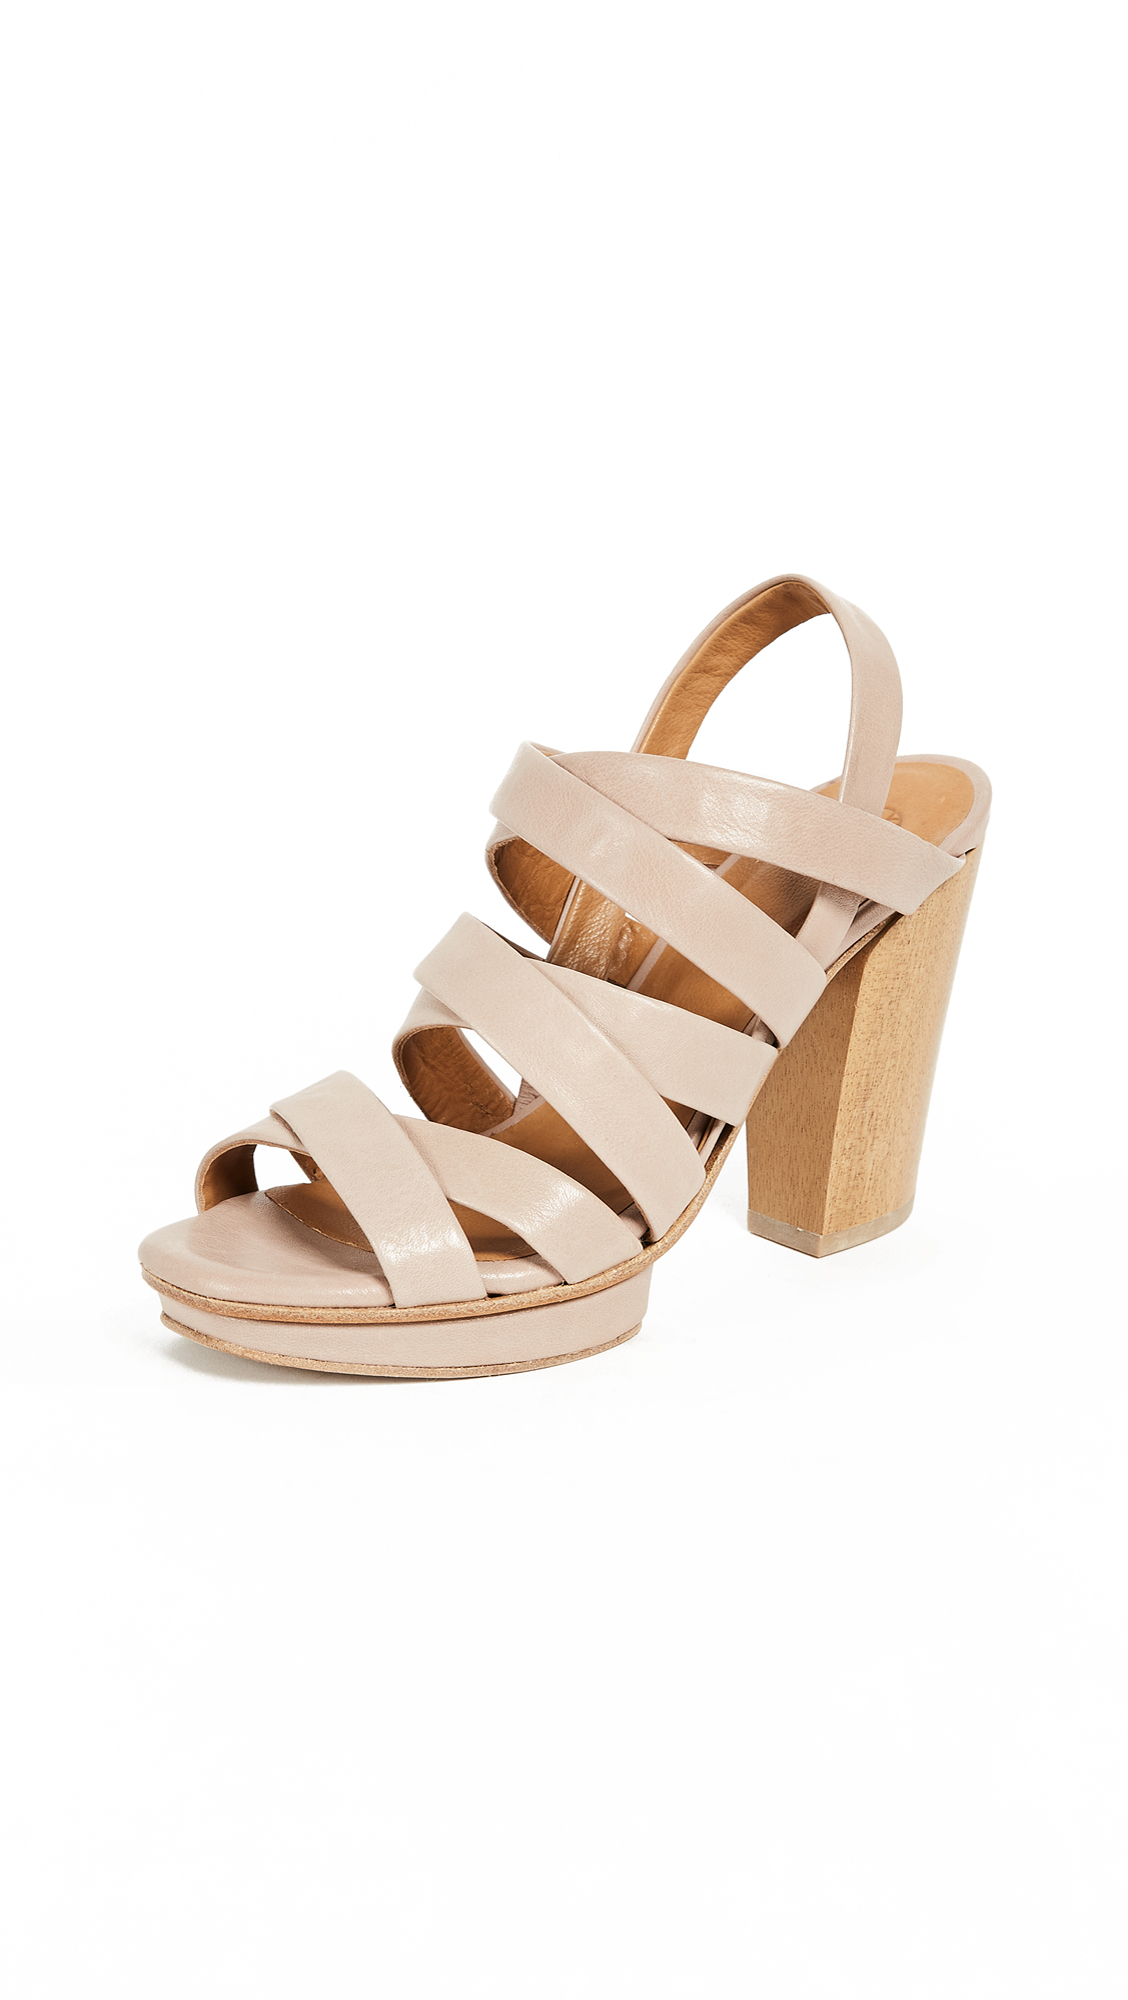 Coclico Shoes UFO Sandals - Cathay Cocco